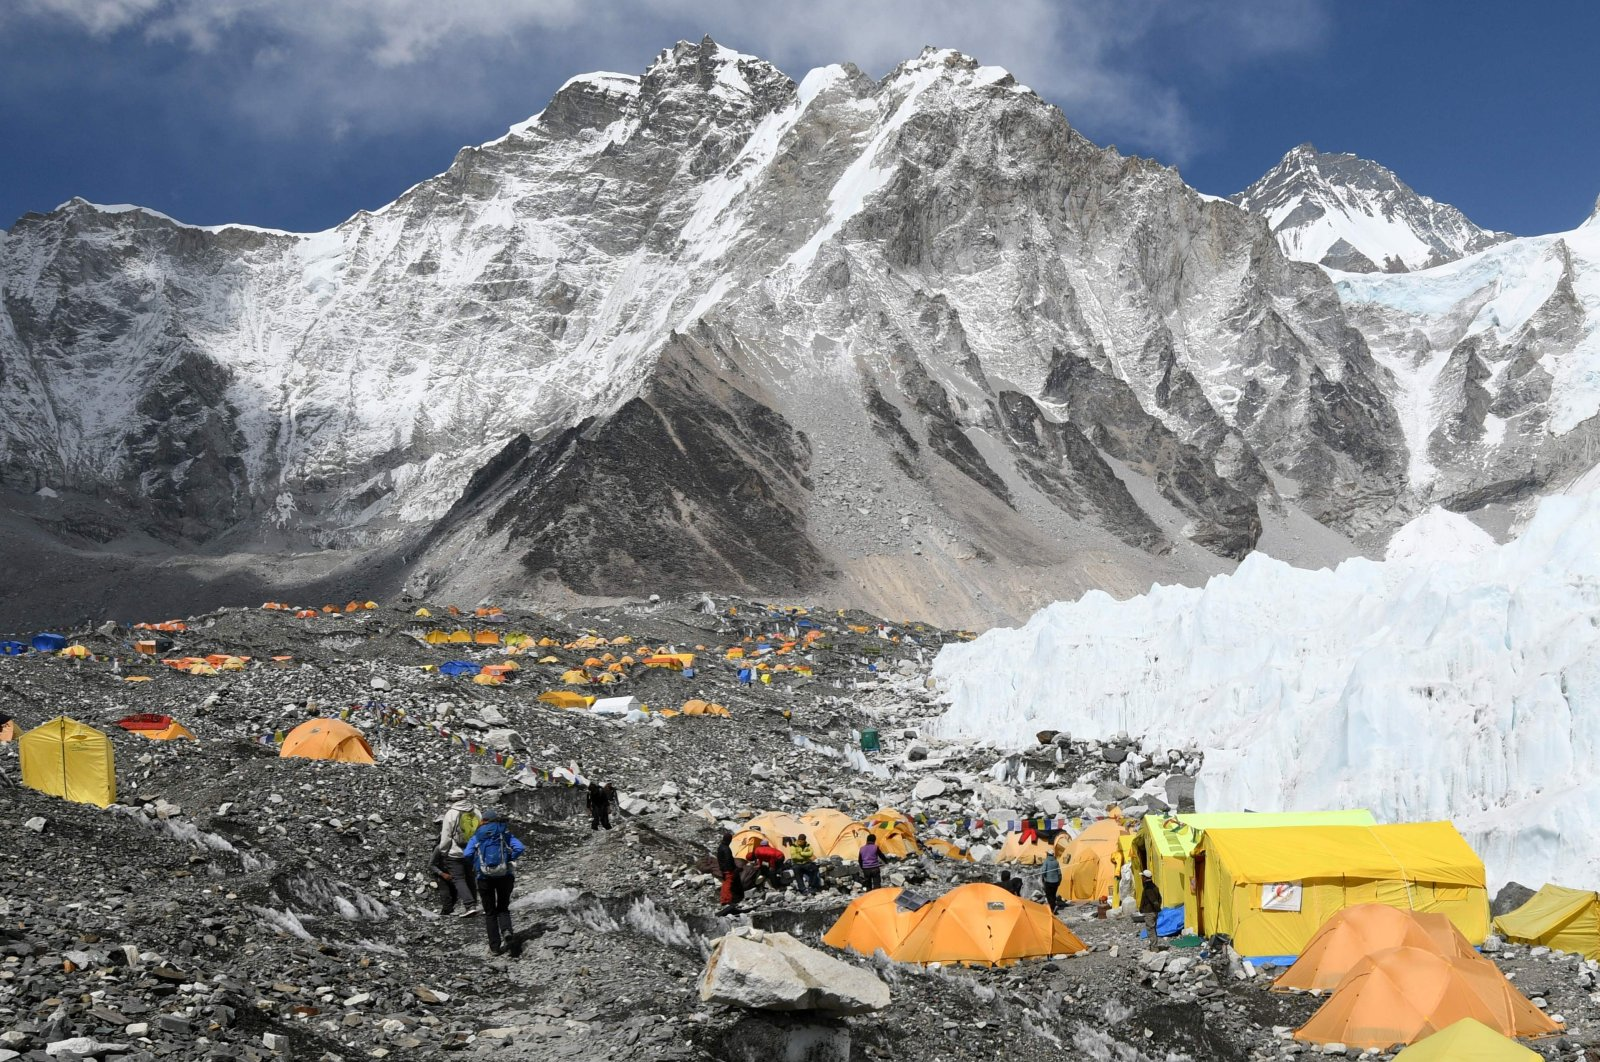 In this file photo taken on April 23, 2018, climbers and porters are seen by their tents at Everest base camp, some 140 kilometres northeast of Kathmandu. (AFP Photo)